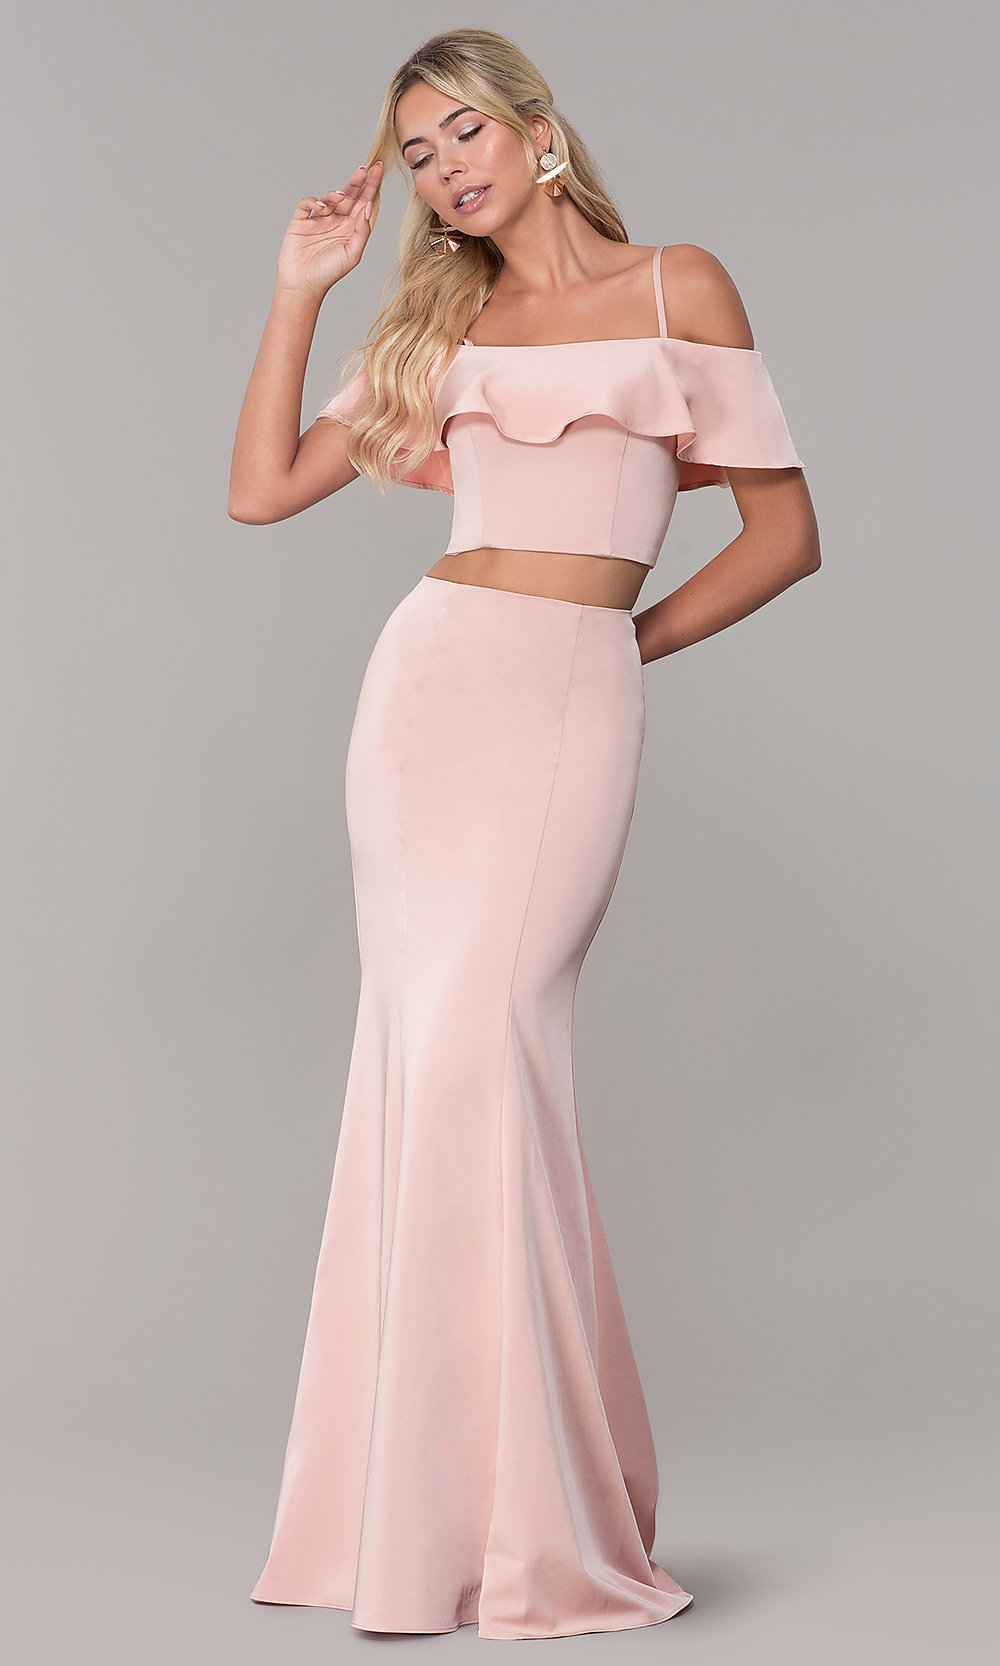 5559d29d0b2 Image of long two-piece ruffled off-the-shoulder prom dress. Style. Tap to  expand